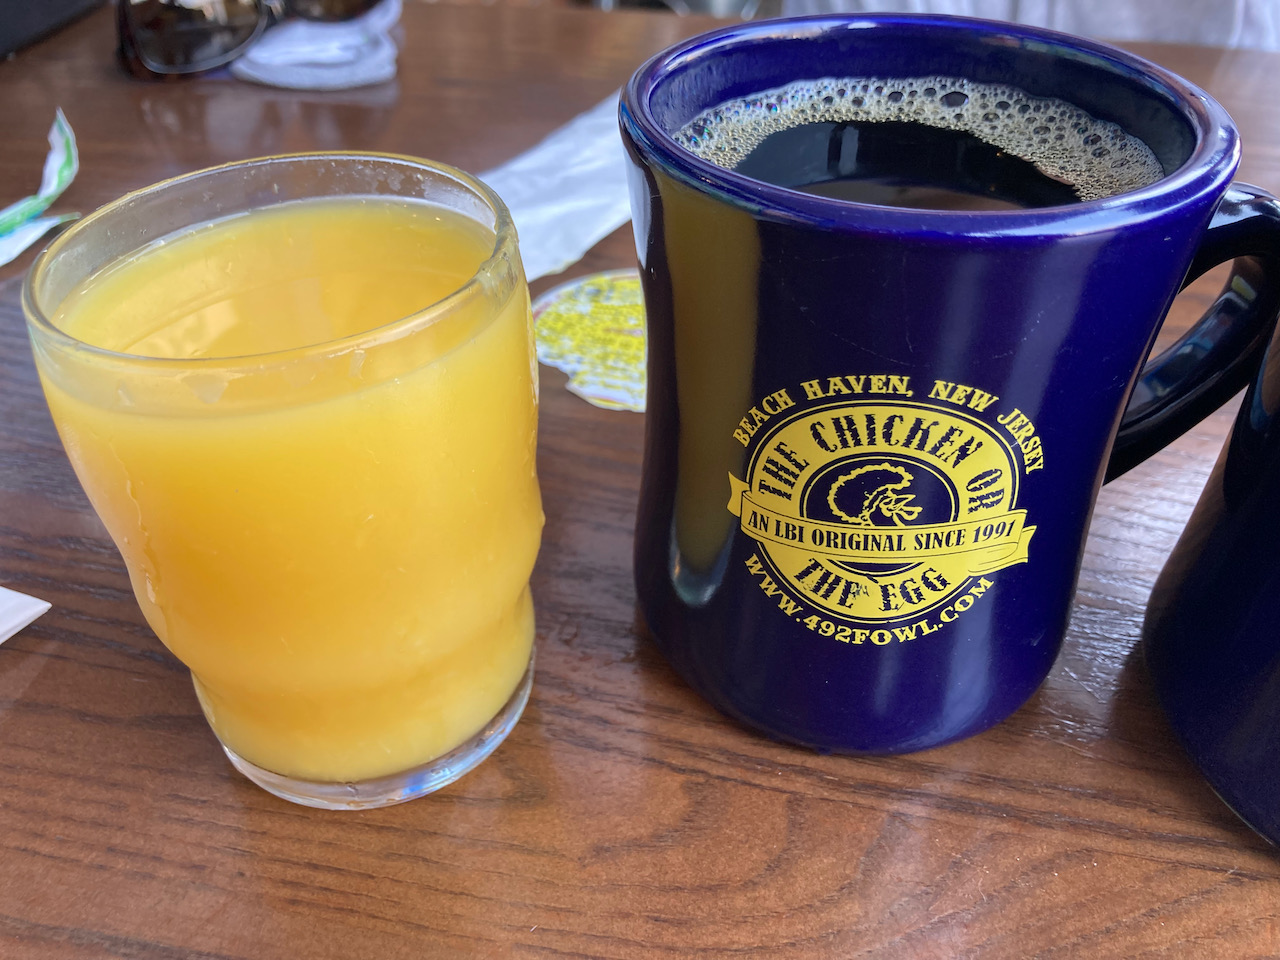 Glass of orange juice and cup of coffee on table.